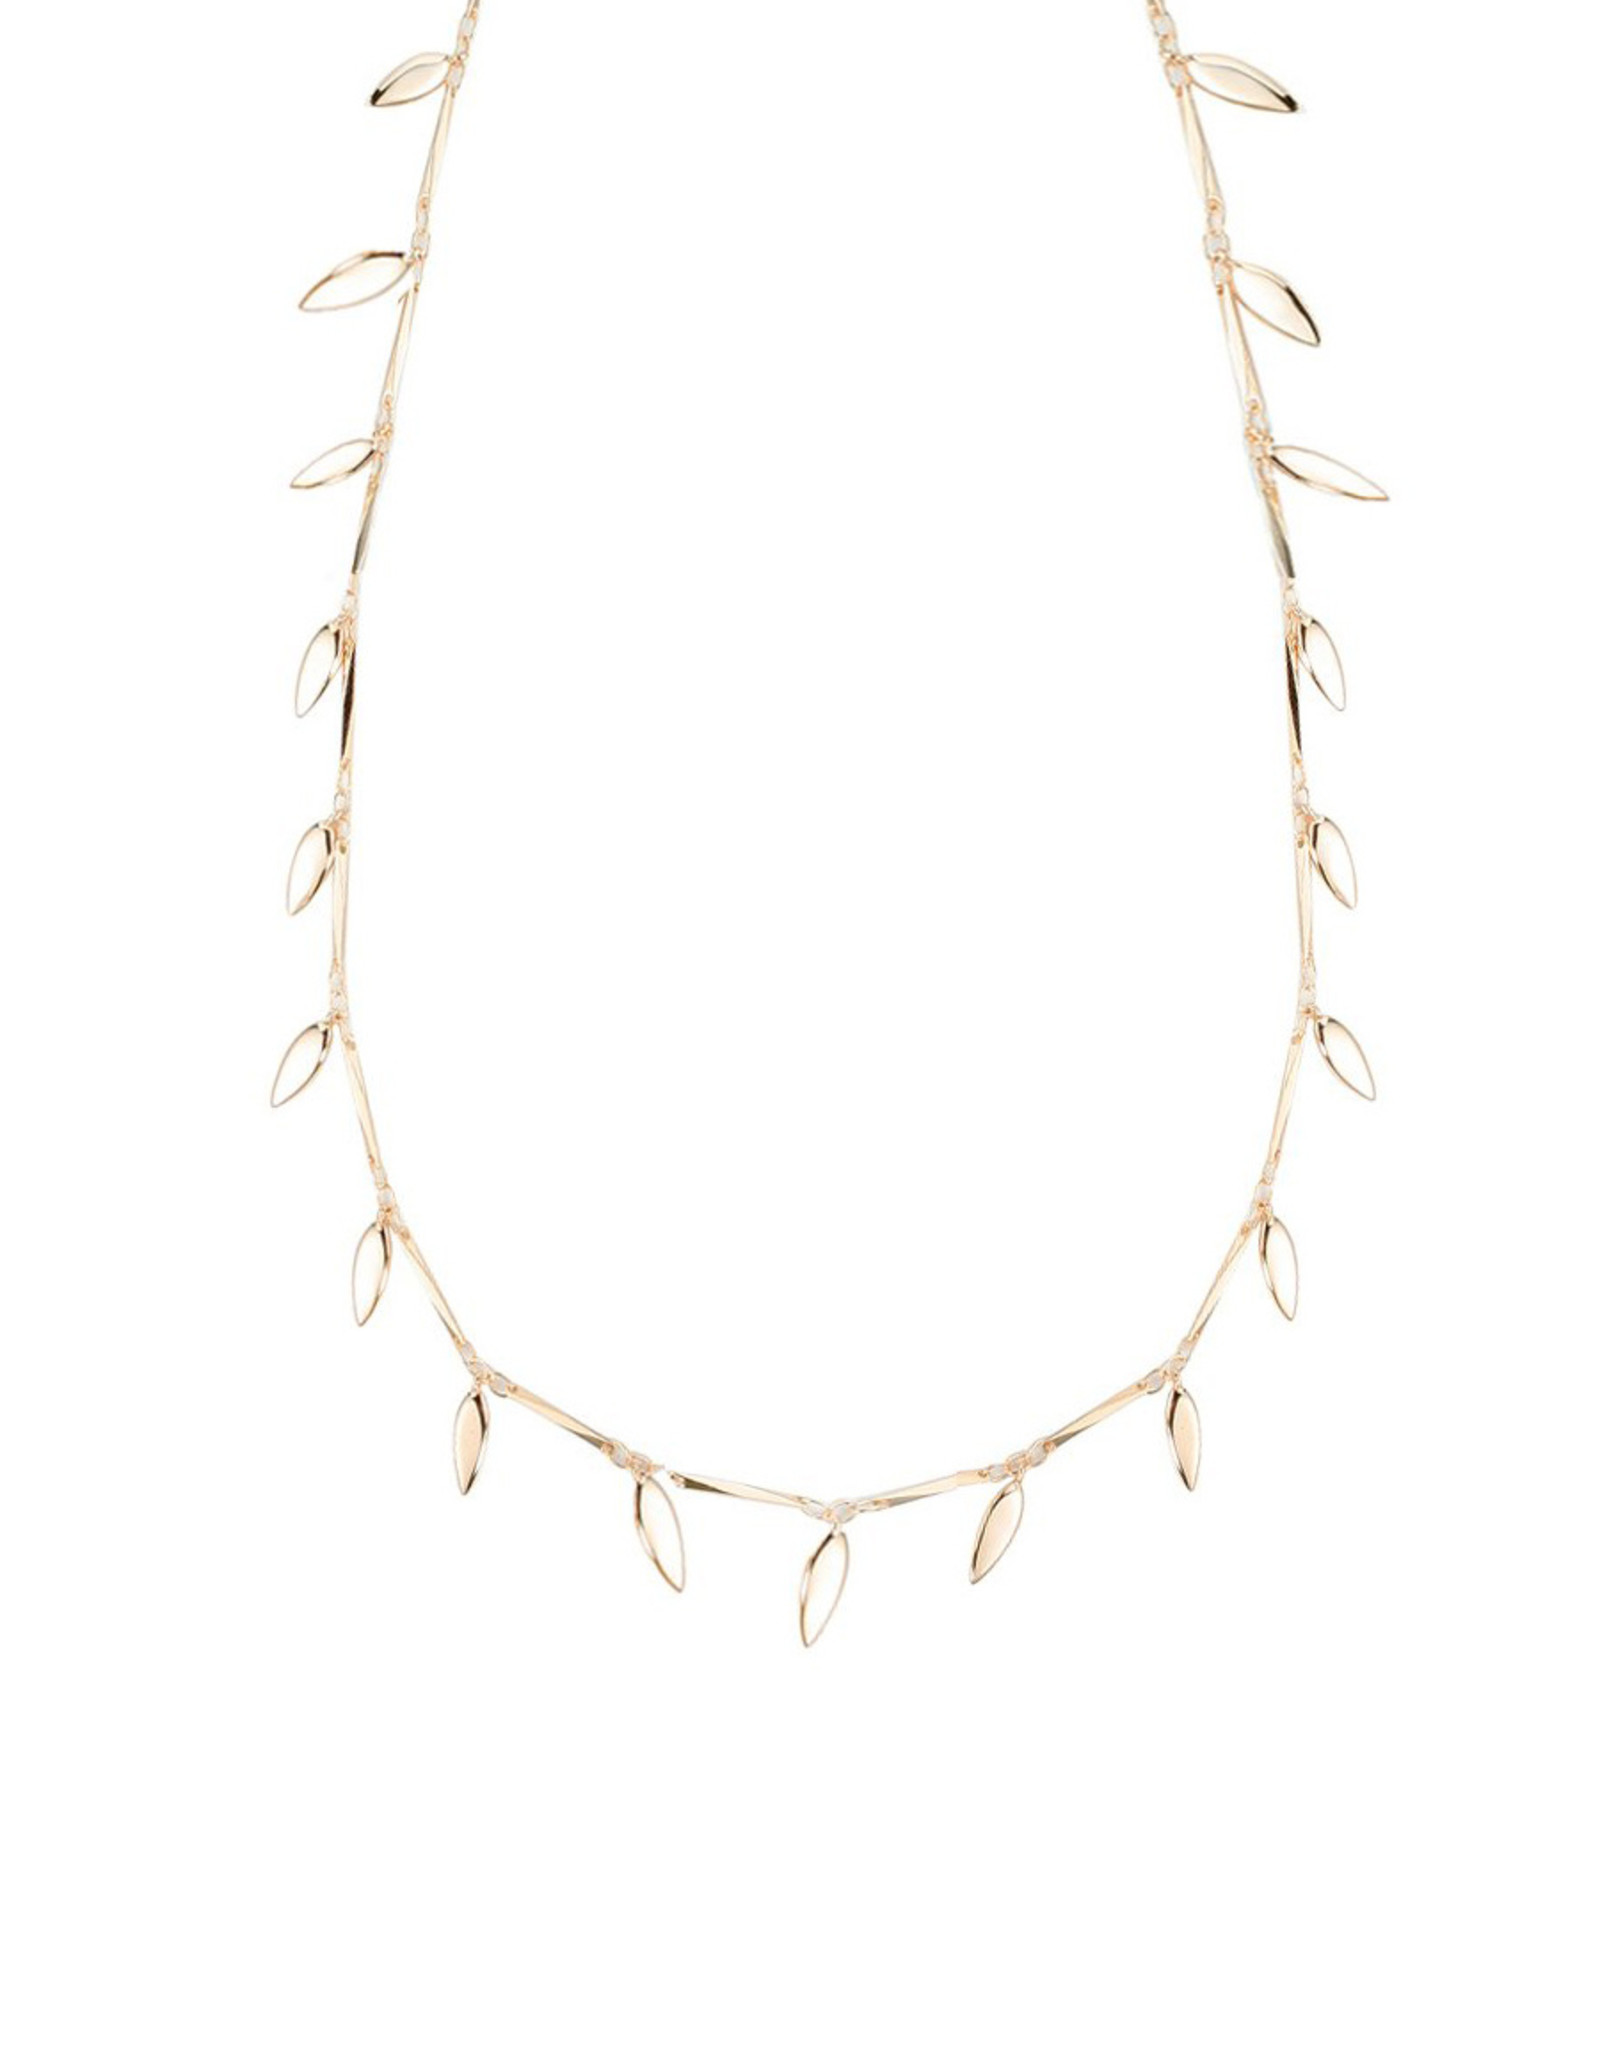 Natalie Wood Designs Choose Happy Adjustable Necklace - Gold